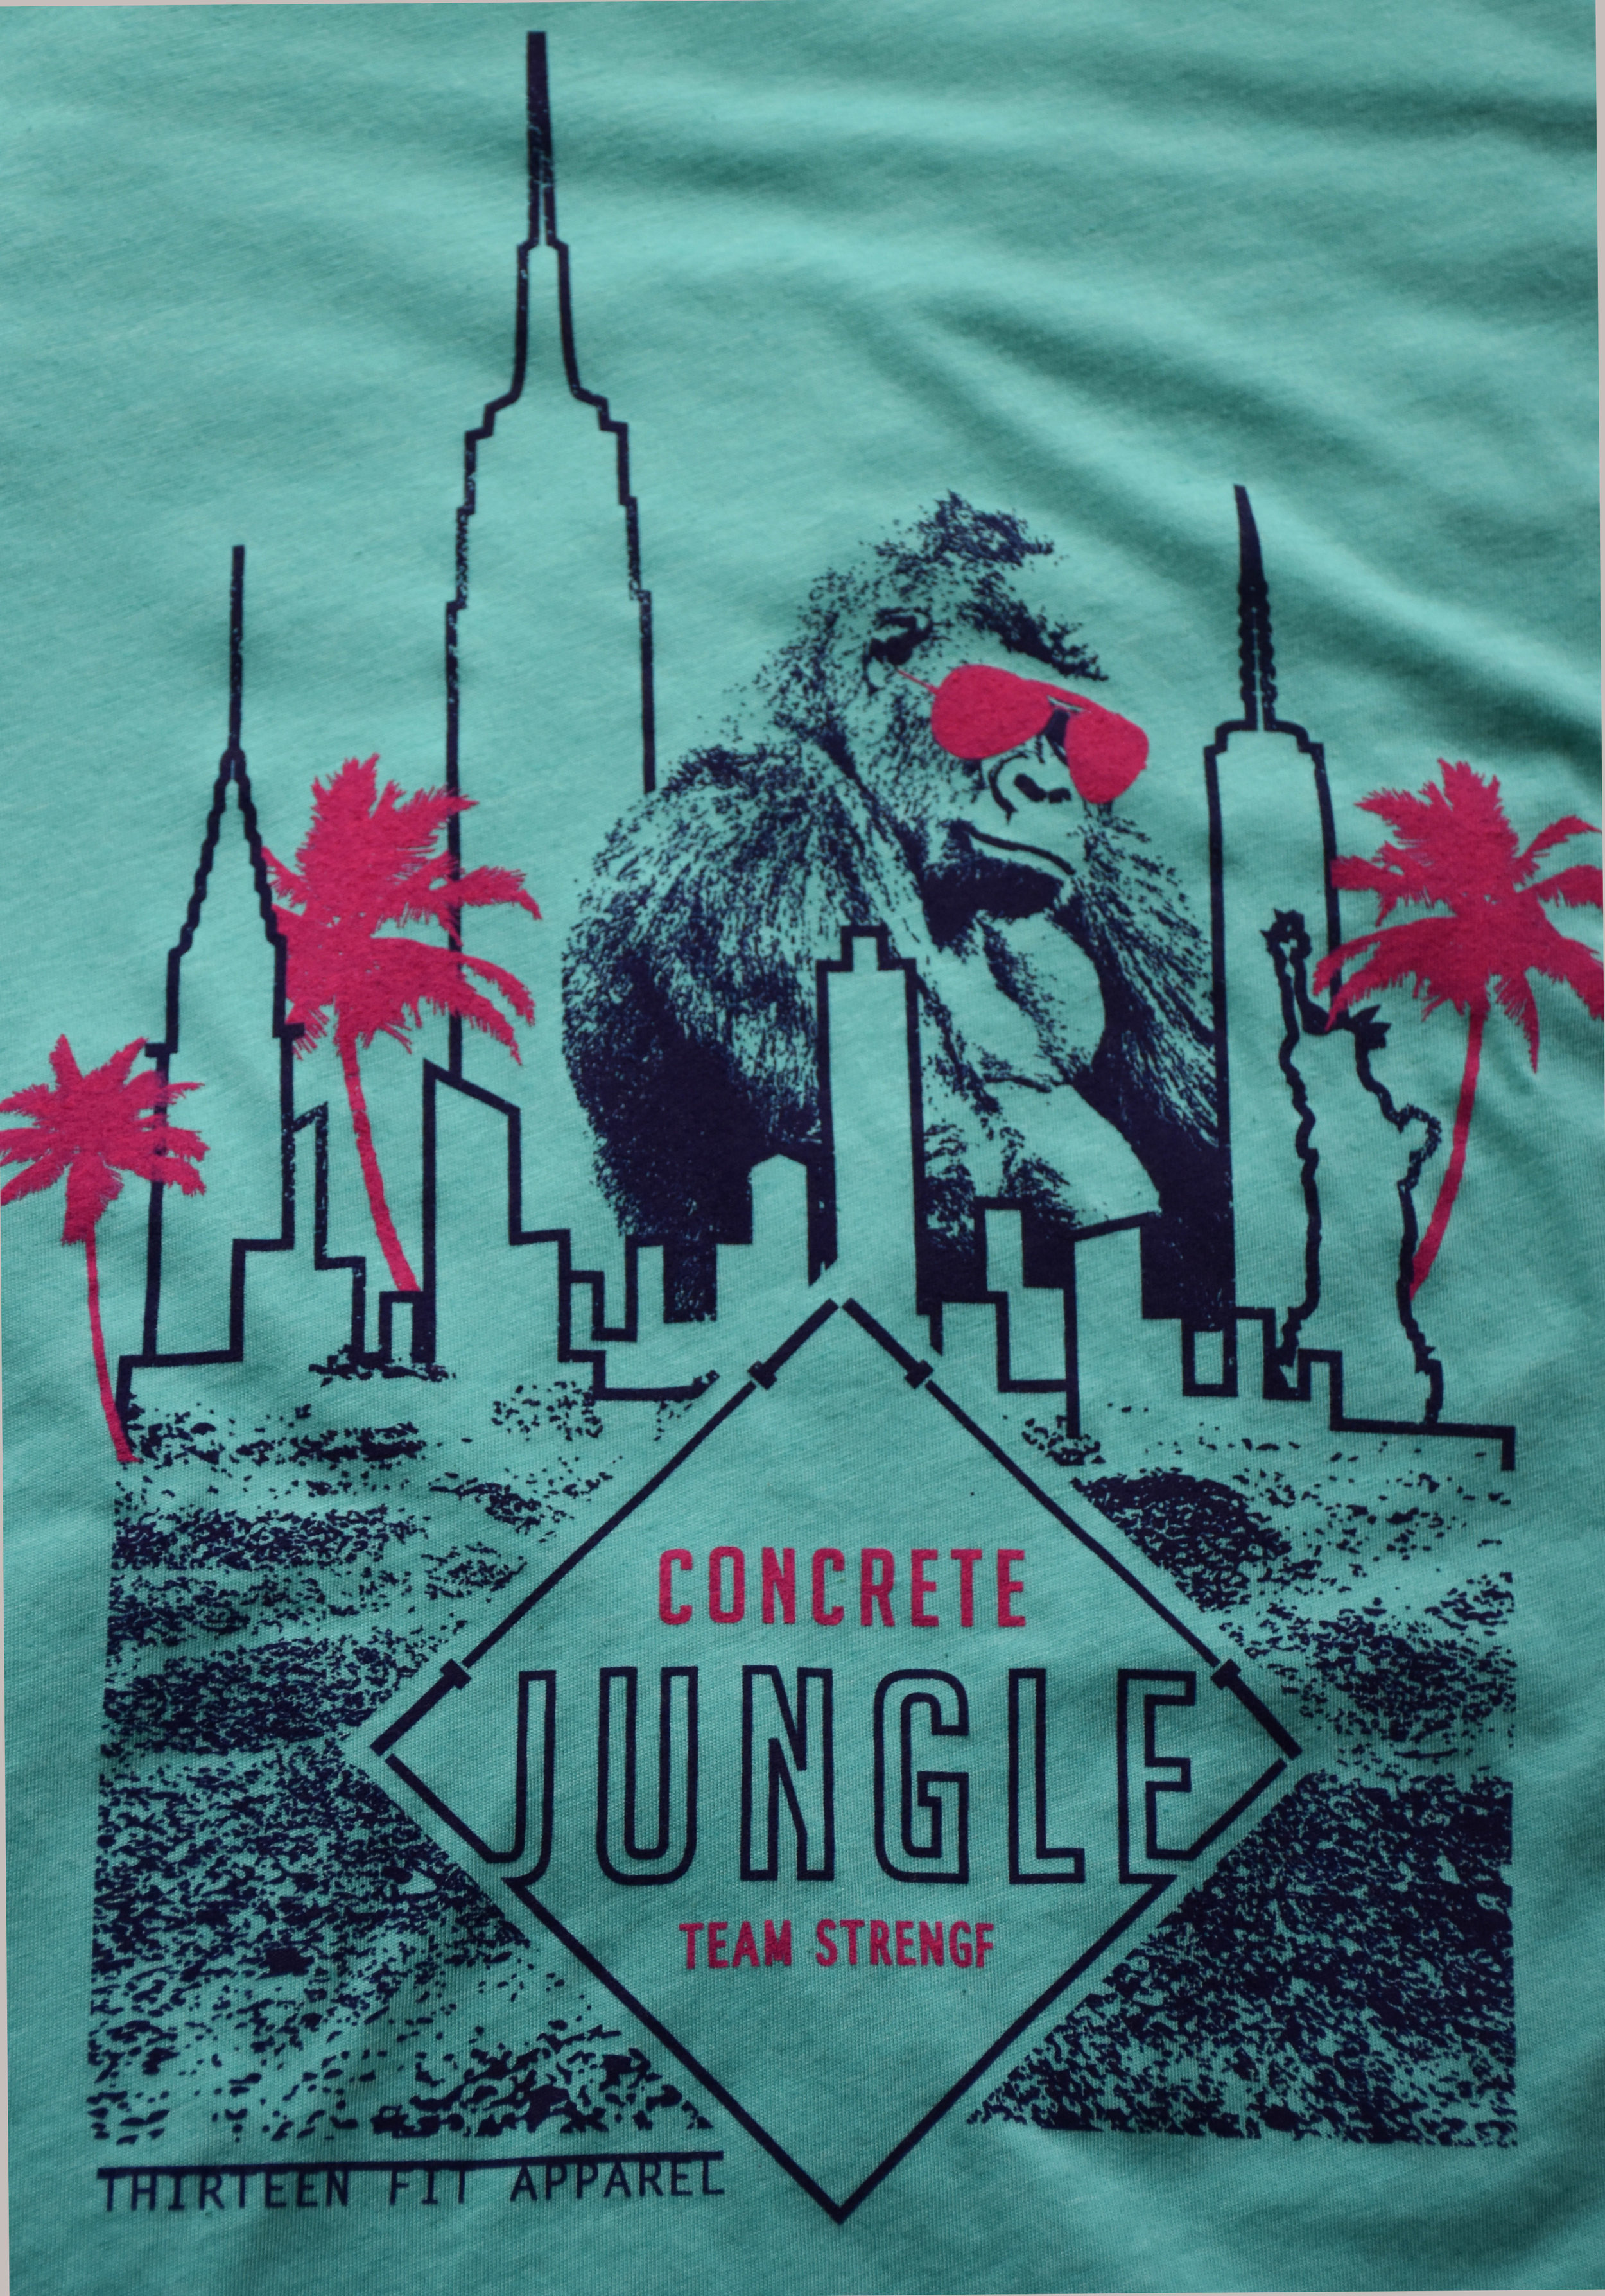 Concrete Jungle Strength + Conditioning Team Tees for the Asbury Park Summer Games